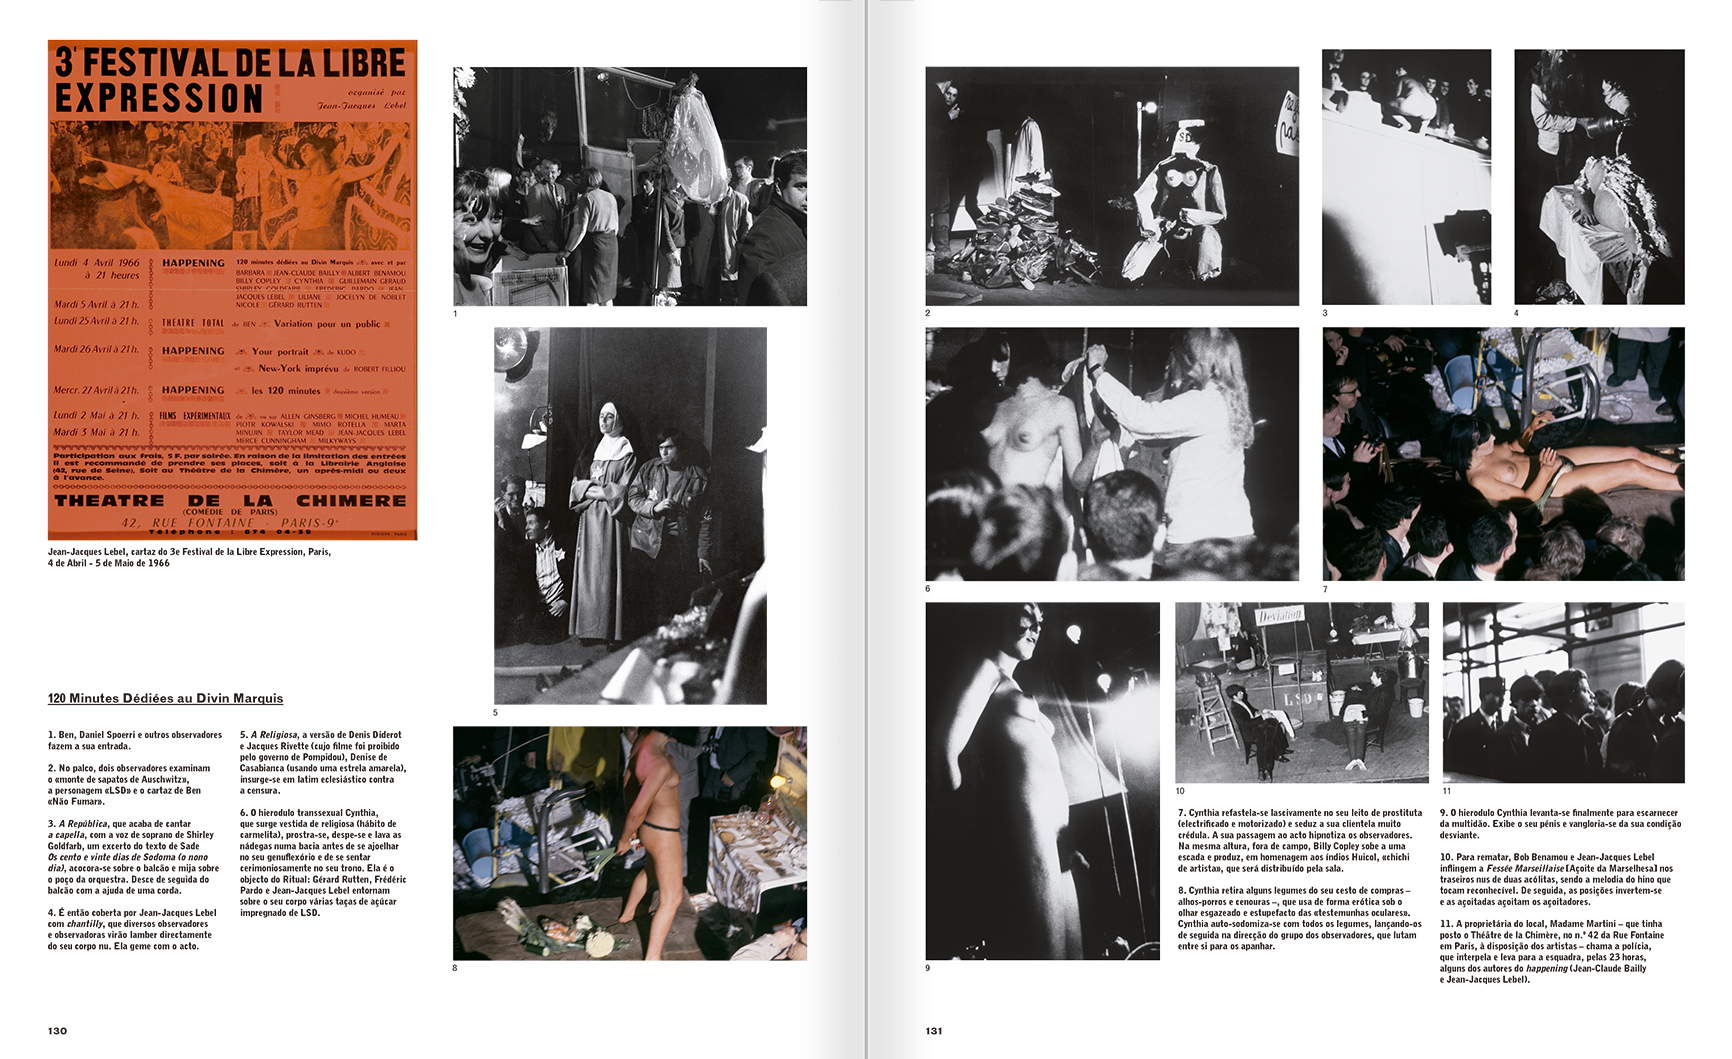 Selection from the catalogue 'A Theater without Theater', pages 130 and 131